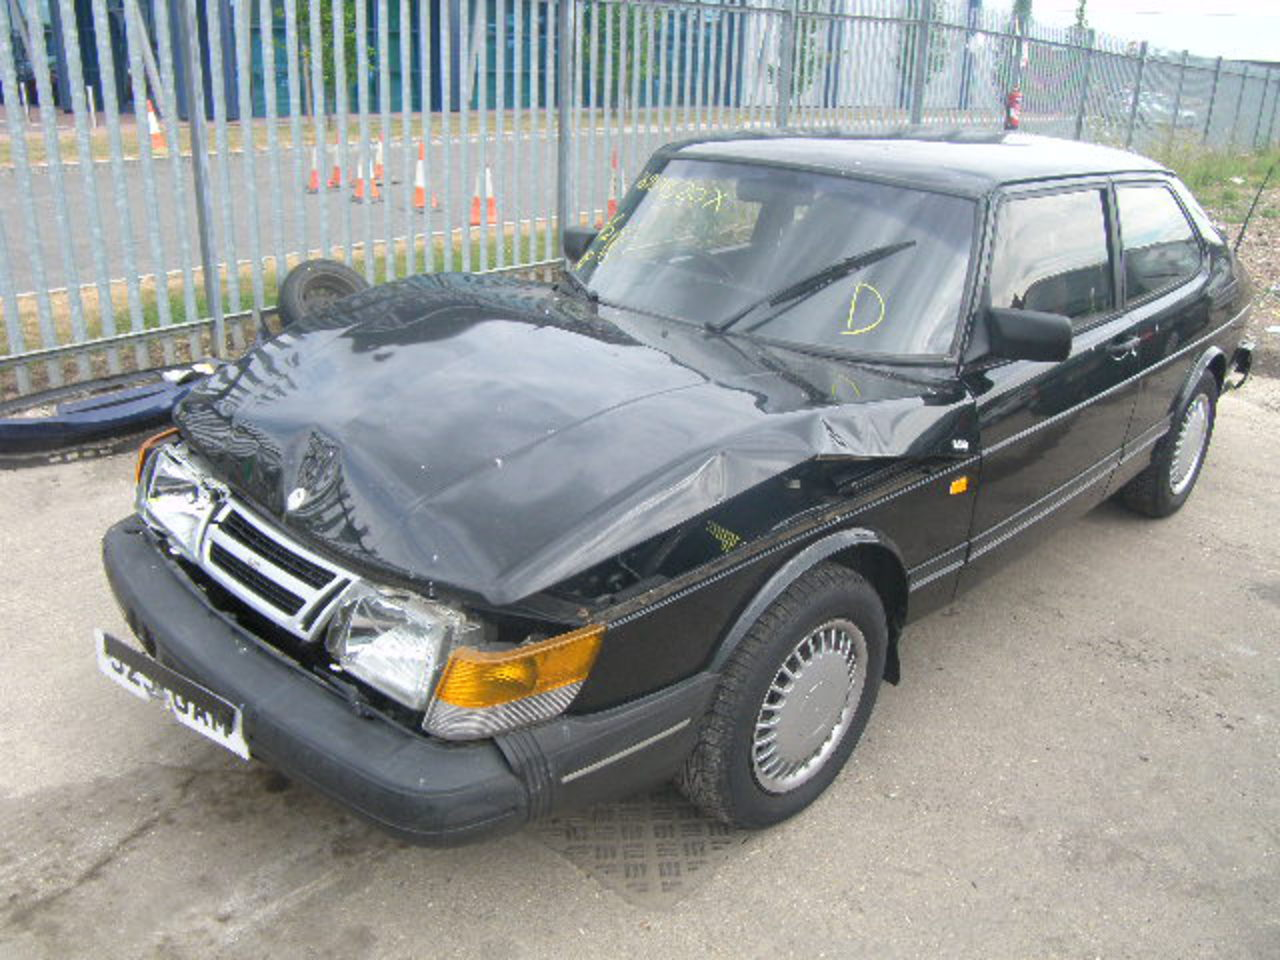 SAAB 900 I 16V Cat C Salvage Auction